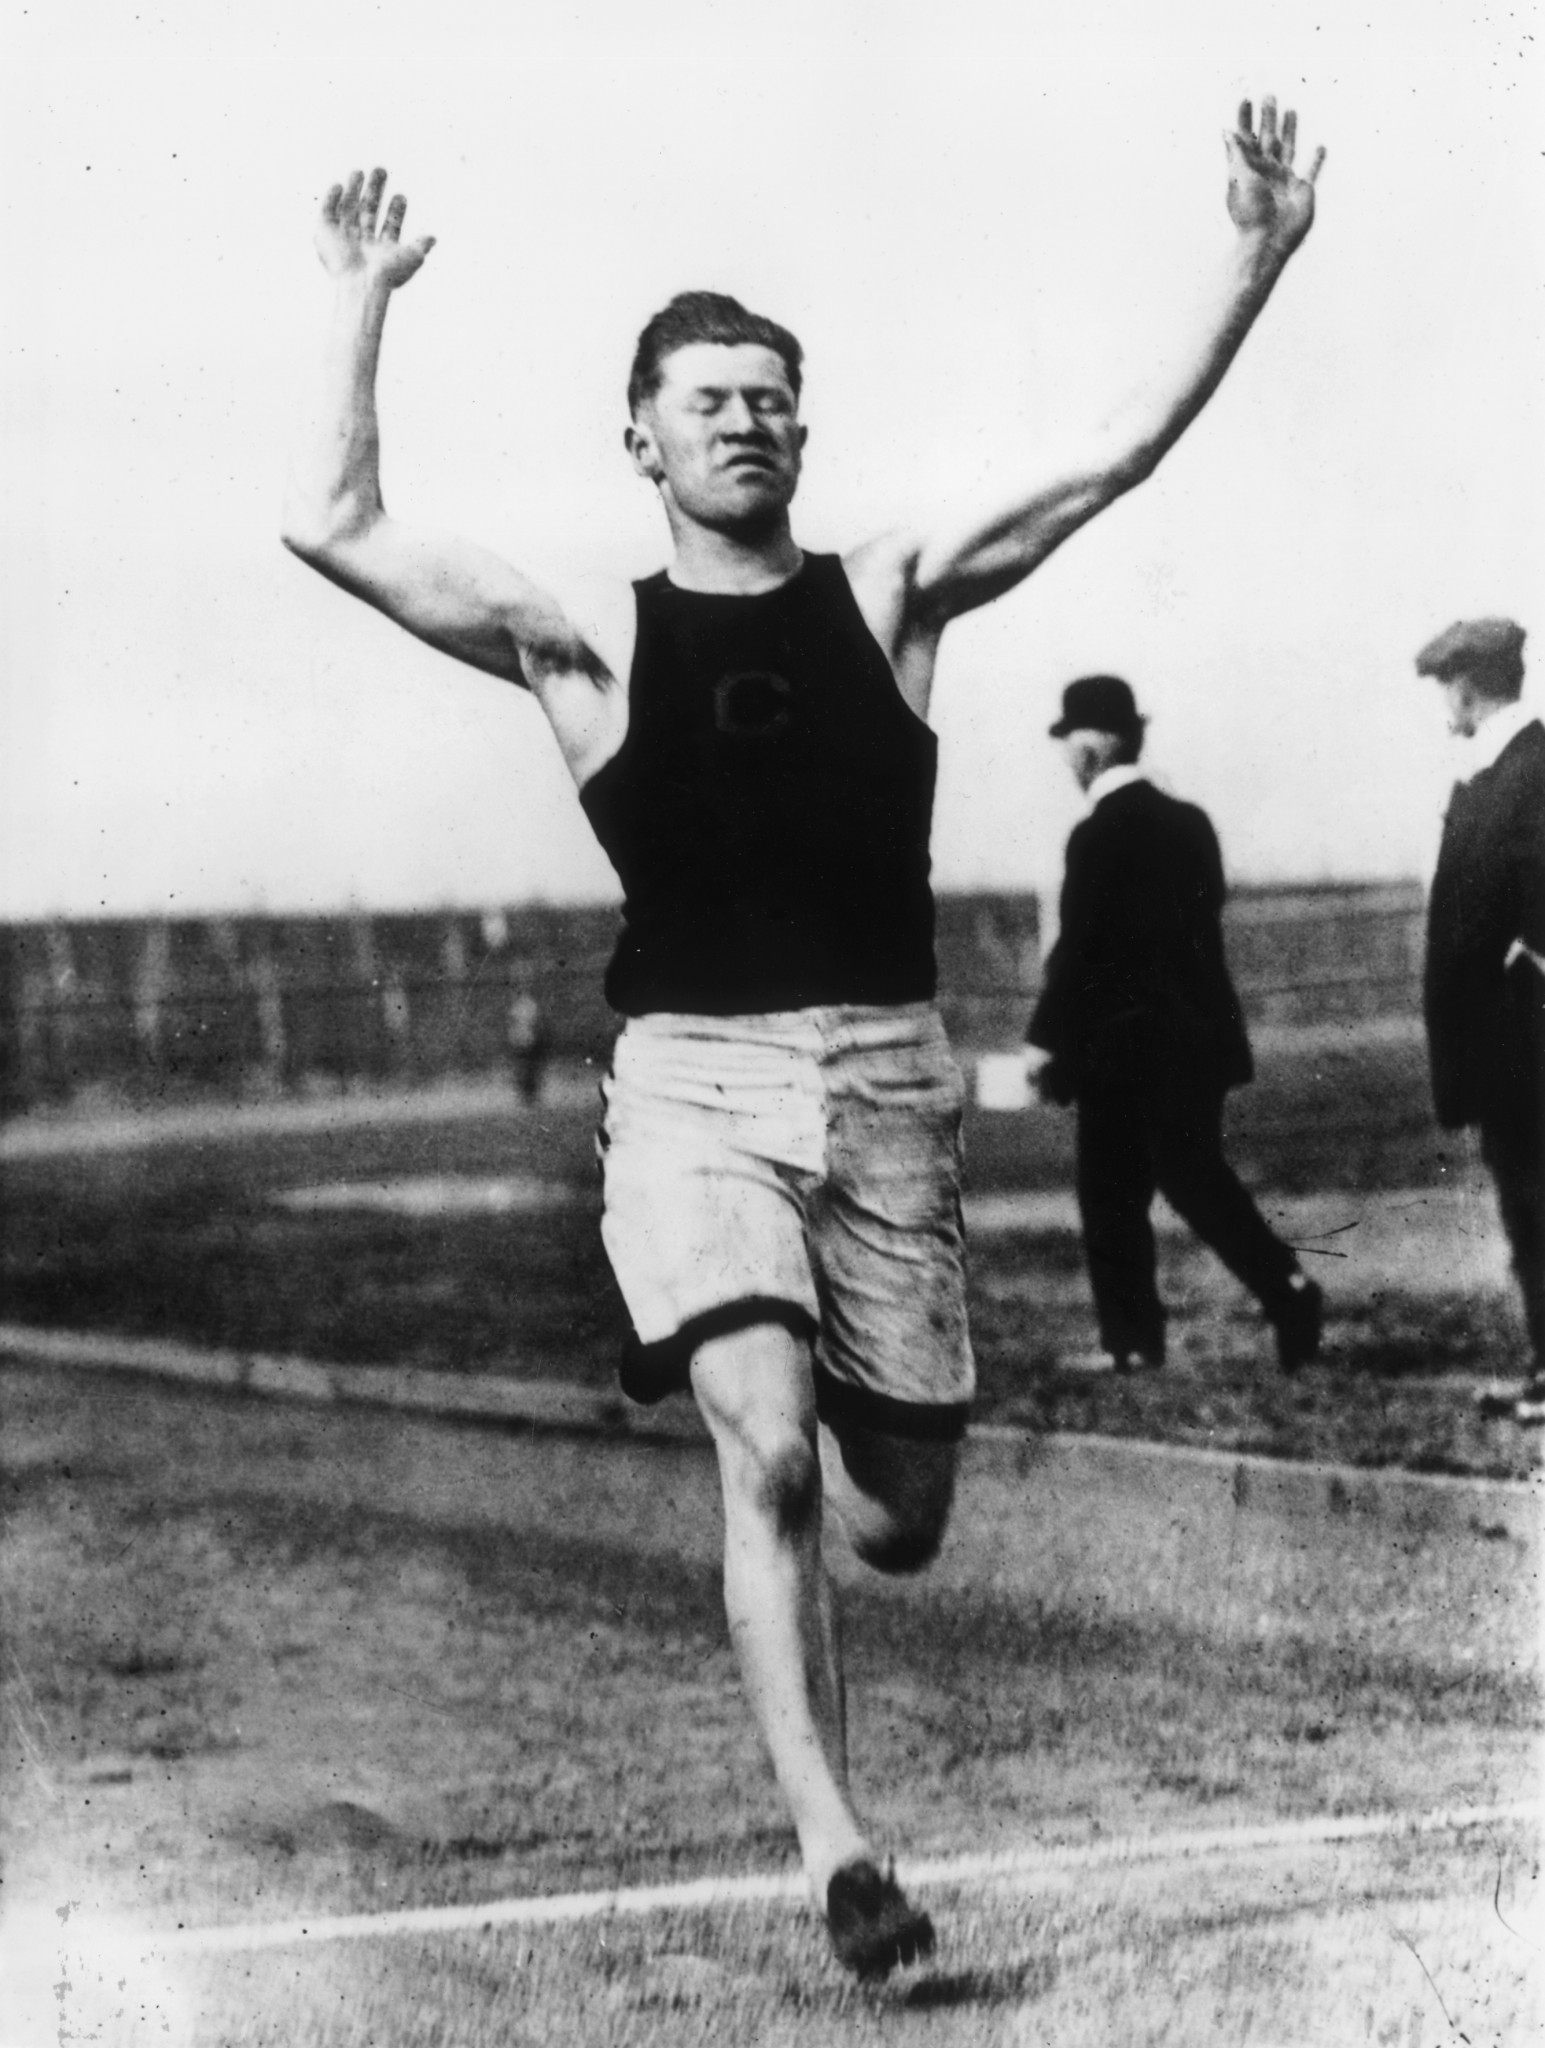 Pennsylvania House of Representatives passes resolution urging IOC to recognise Thorpe as sole champion from Stockholm 1912